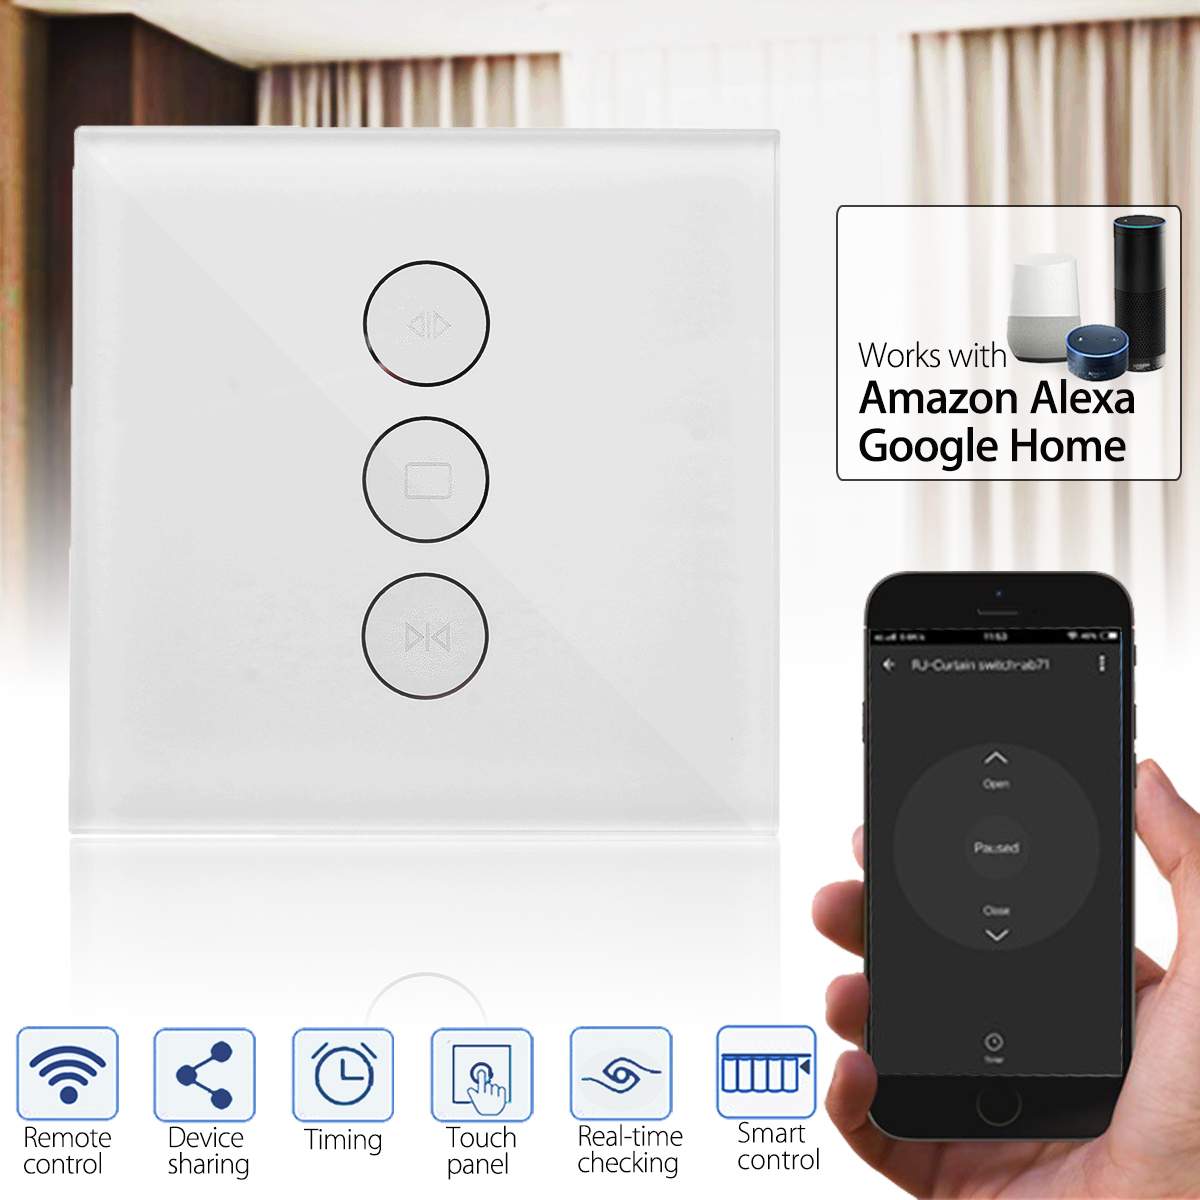 100-240V Smart WiFi Curtain Wall Switch Wall Socket Switch Panel Work With Alexa Google Home